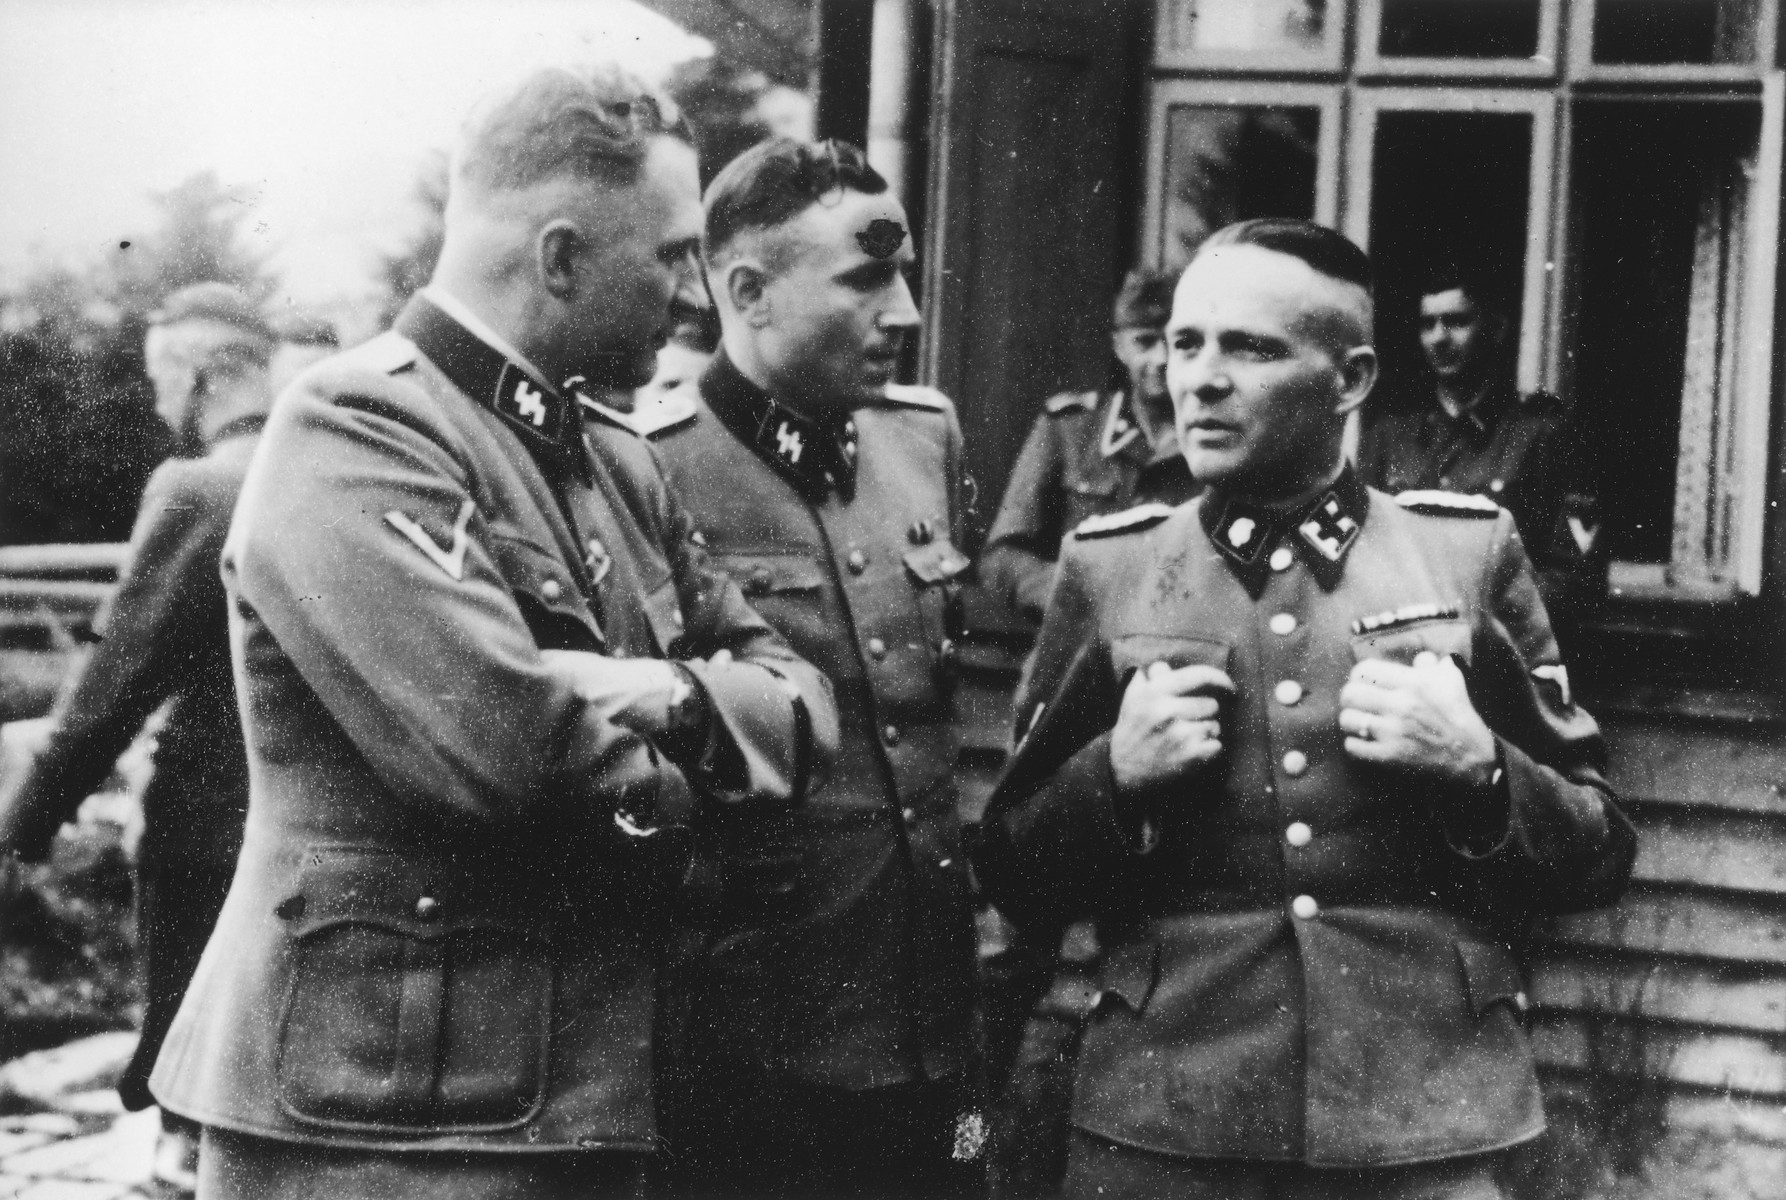 Three SS officers chat on the grounds of the SS retreat, Solahuette, outside of Auschwitz.  From left to right: Richard Baer (commandant of Auschwitz), Karl Hoecker (his adjutant), and Rudolf Hoess (the former commandant).  [Based on the officers visiting Solahutte, we surmise that the photographs were taken to honor Rudolf Hoess who completed his tenure as garrison senior on July 29.]